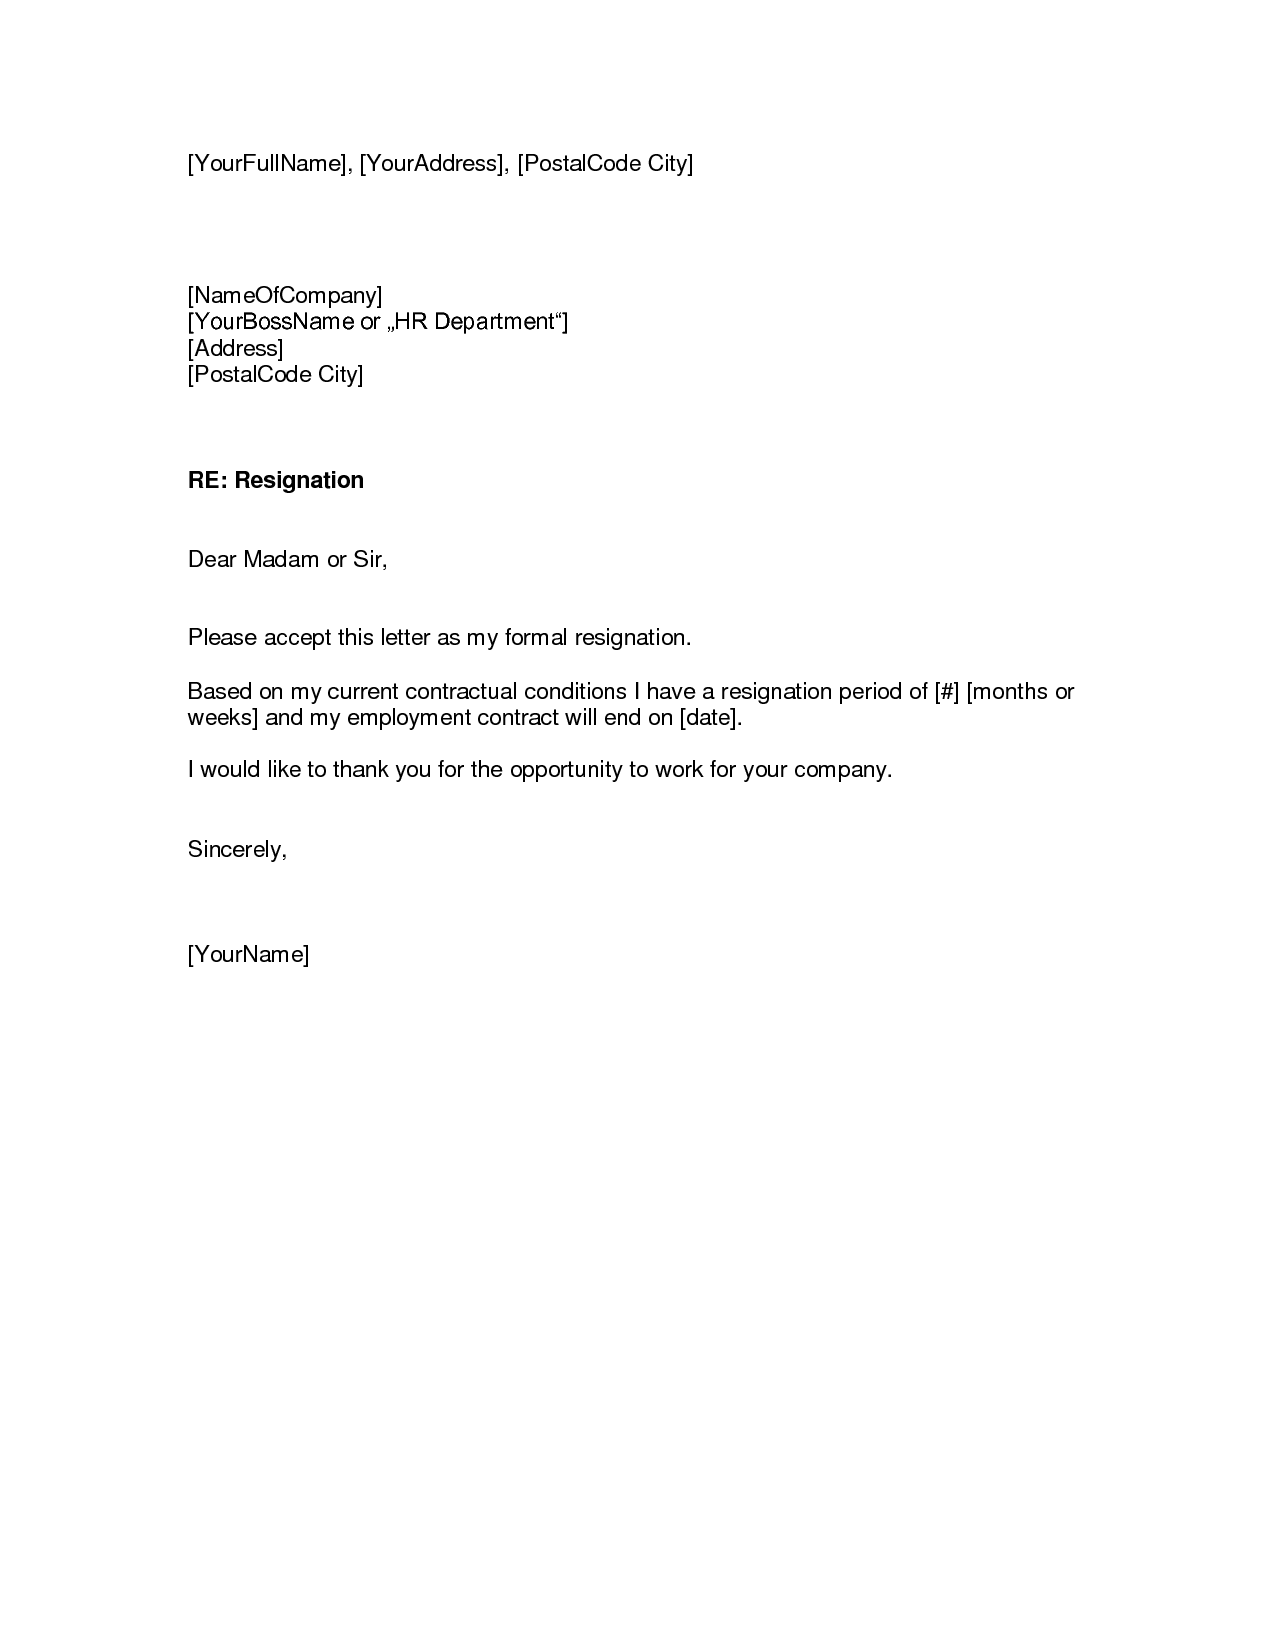 Pin by Template on Template | Letter sample, Resignation letter ...